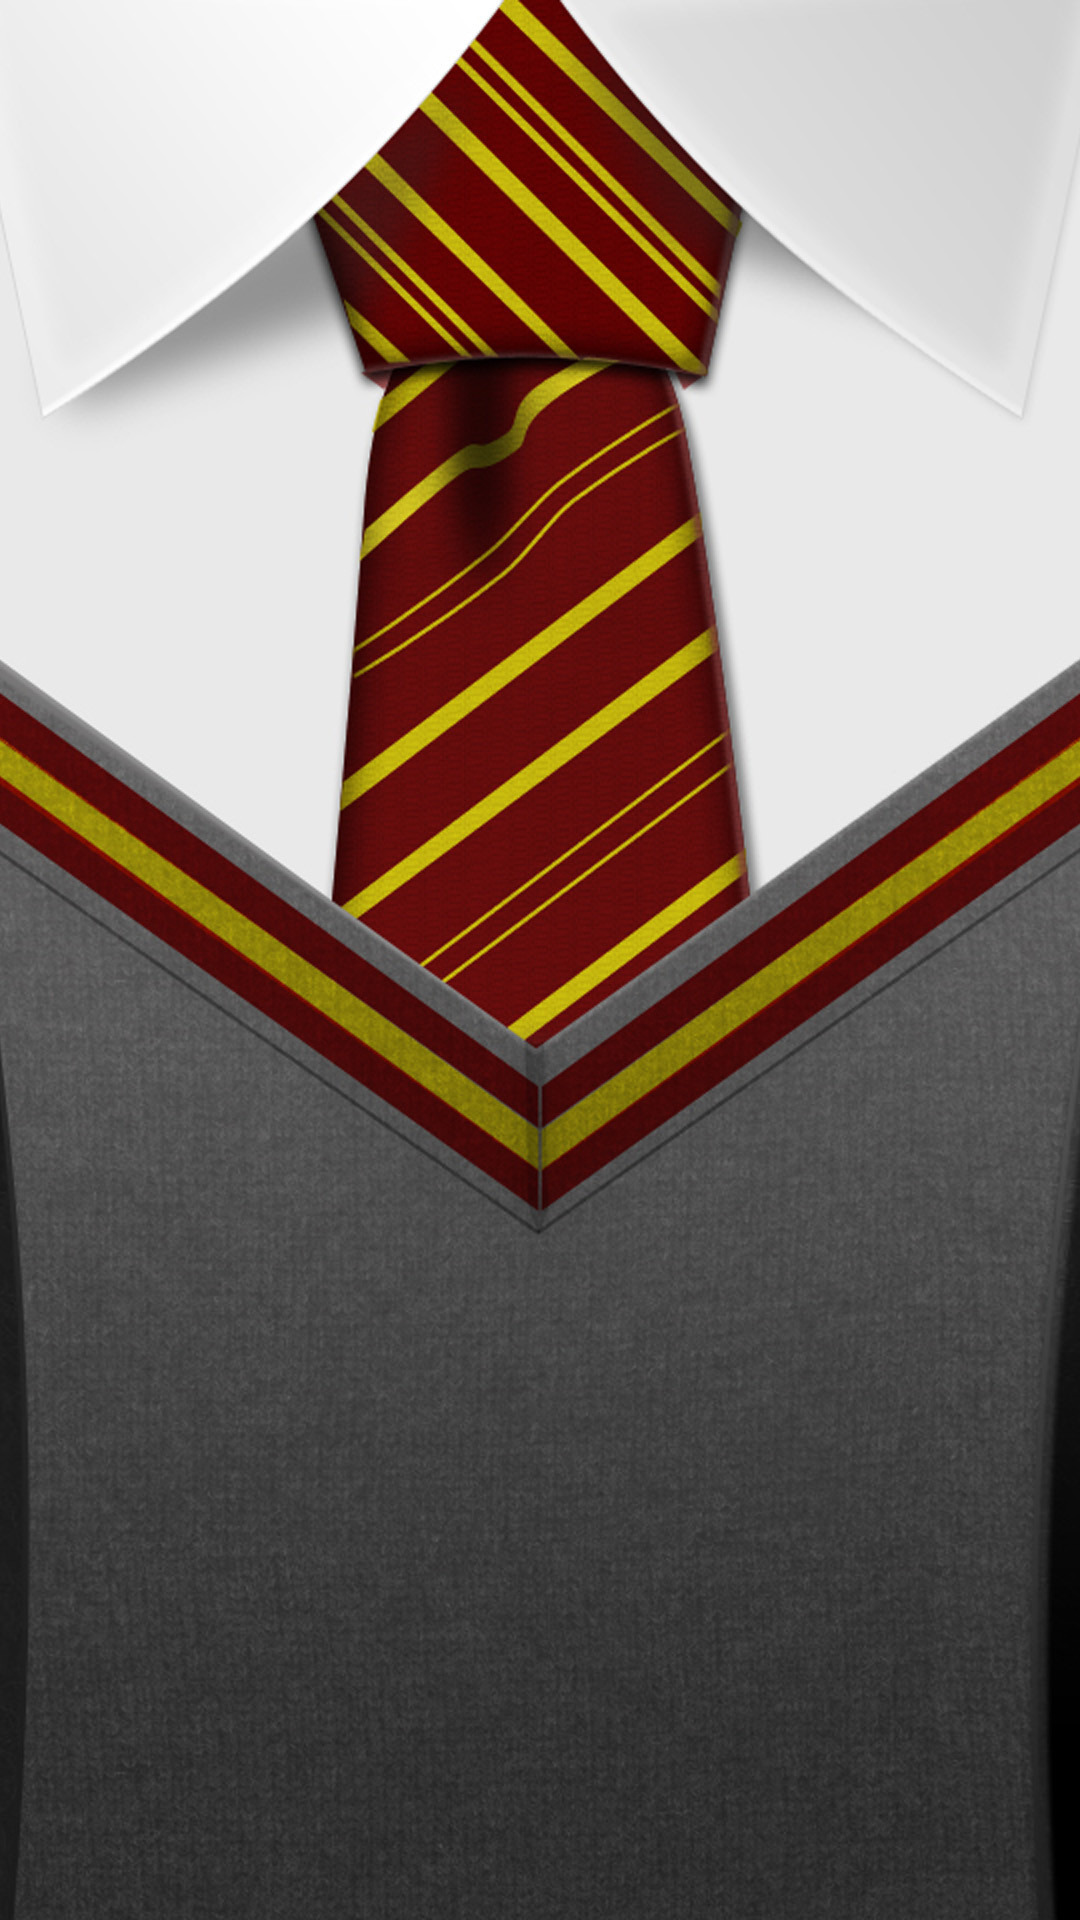 1080x1920 Harry Potter Gryffindor Tie